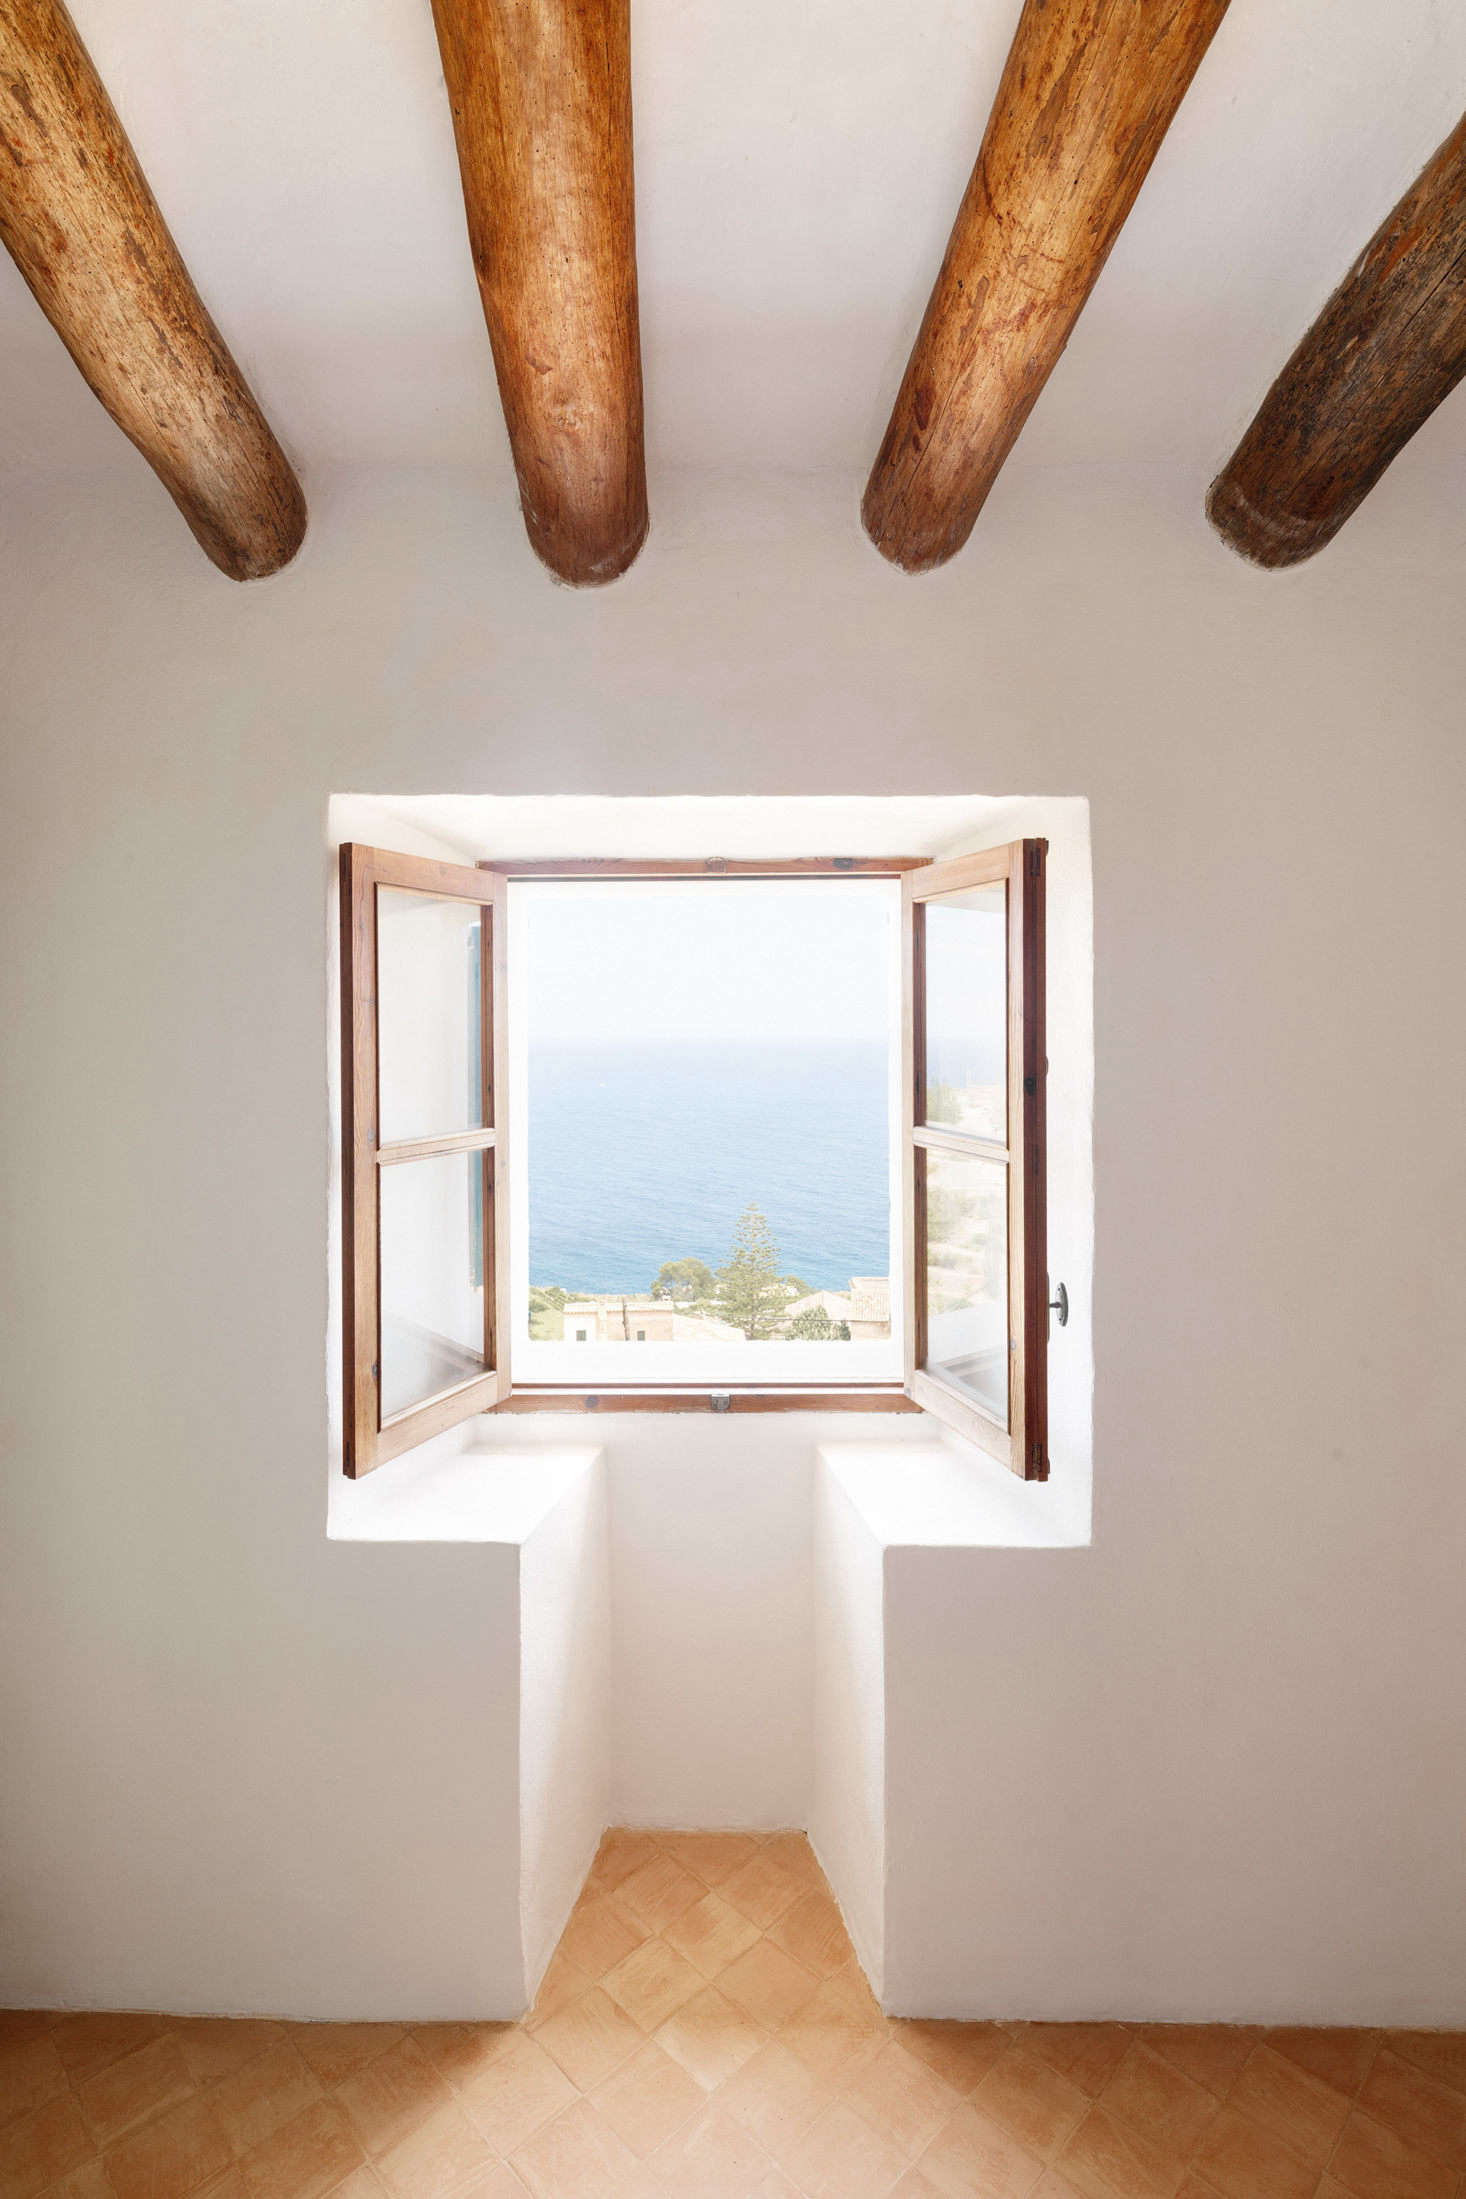 A front window overlooks the sea.